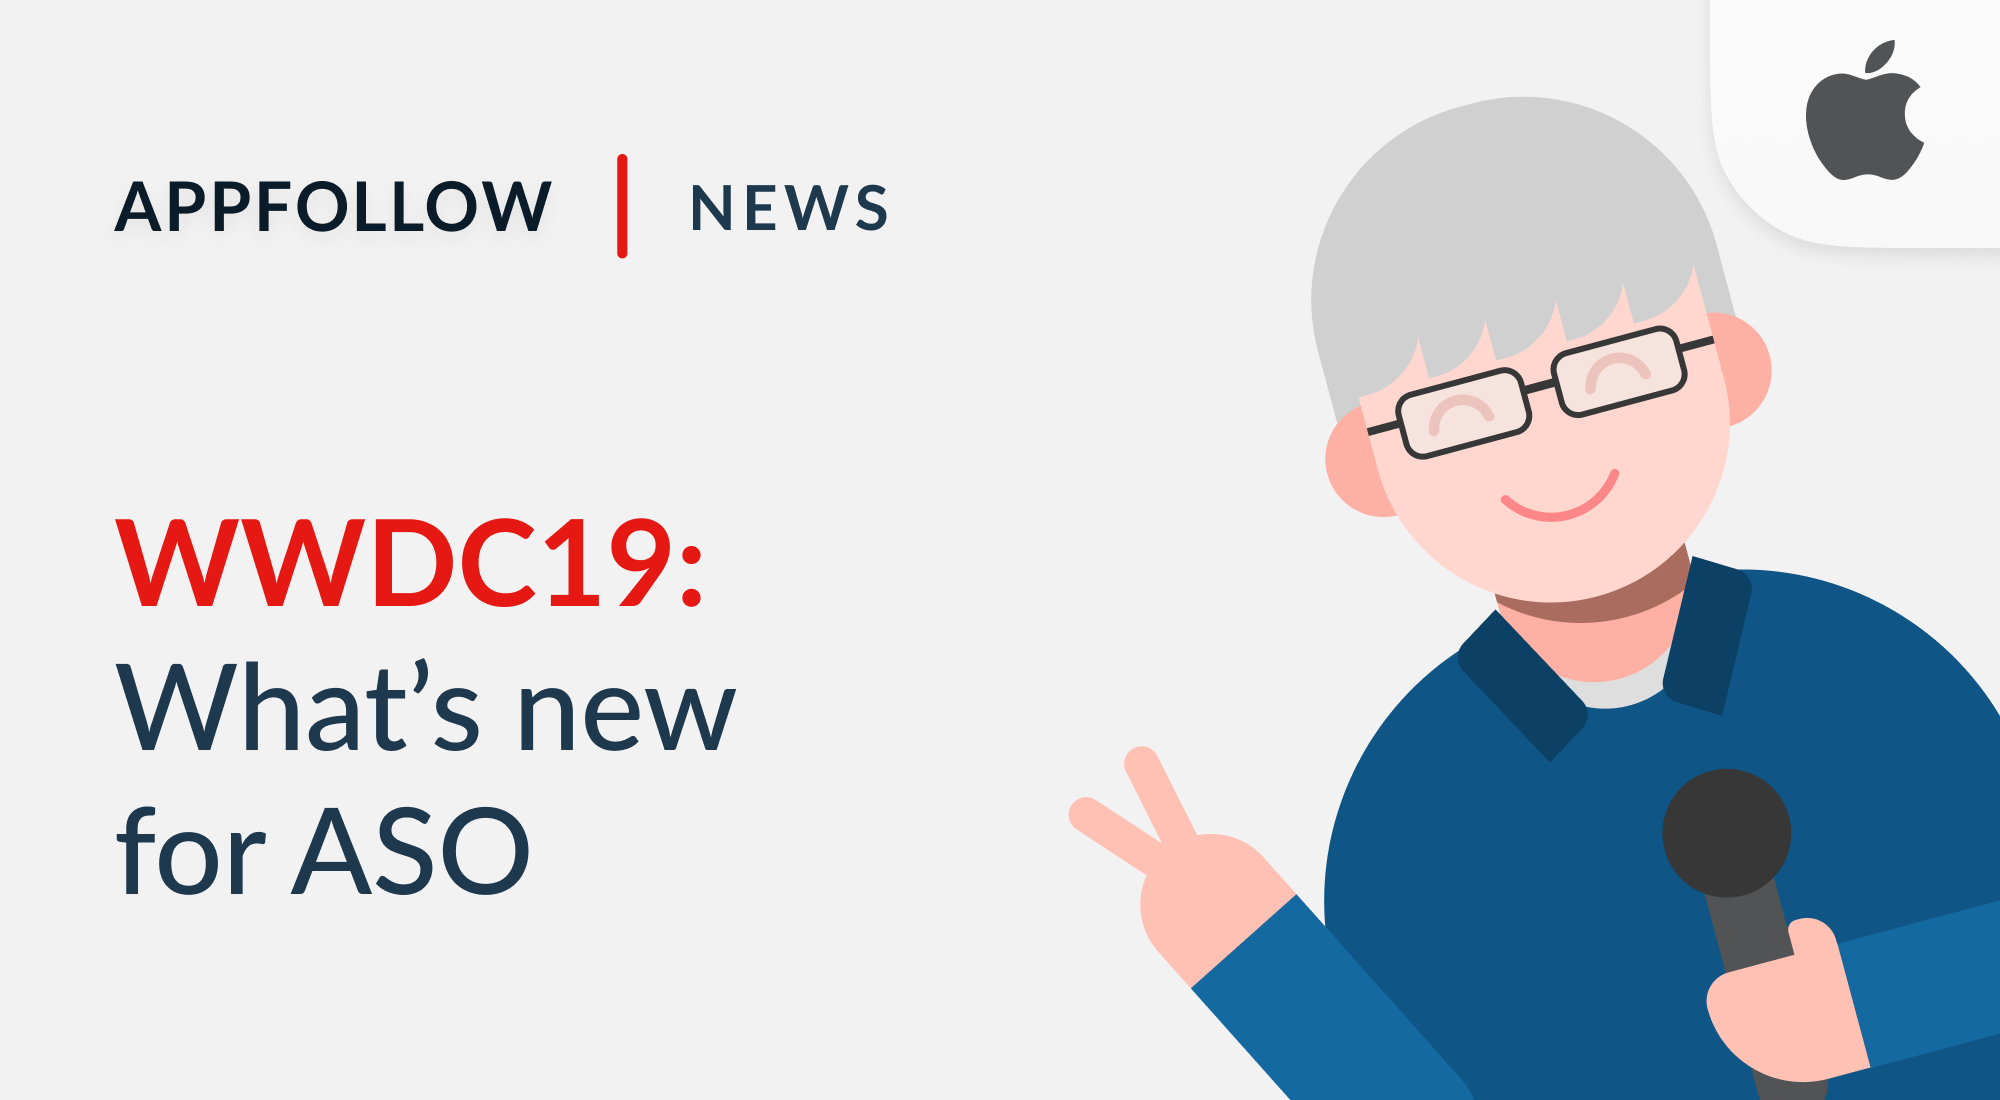 WWDC19: How will the ASO game change?